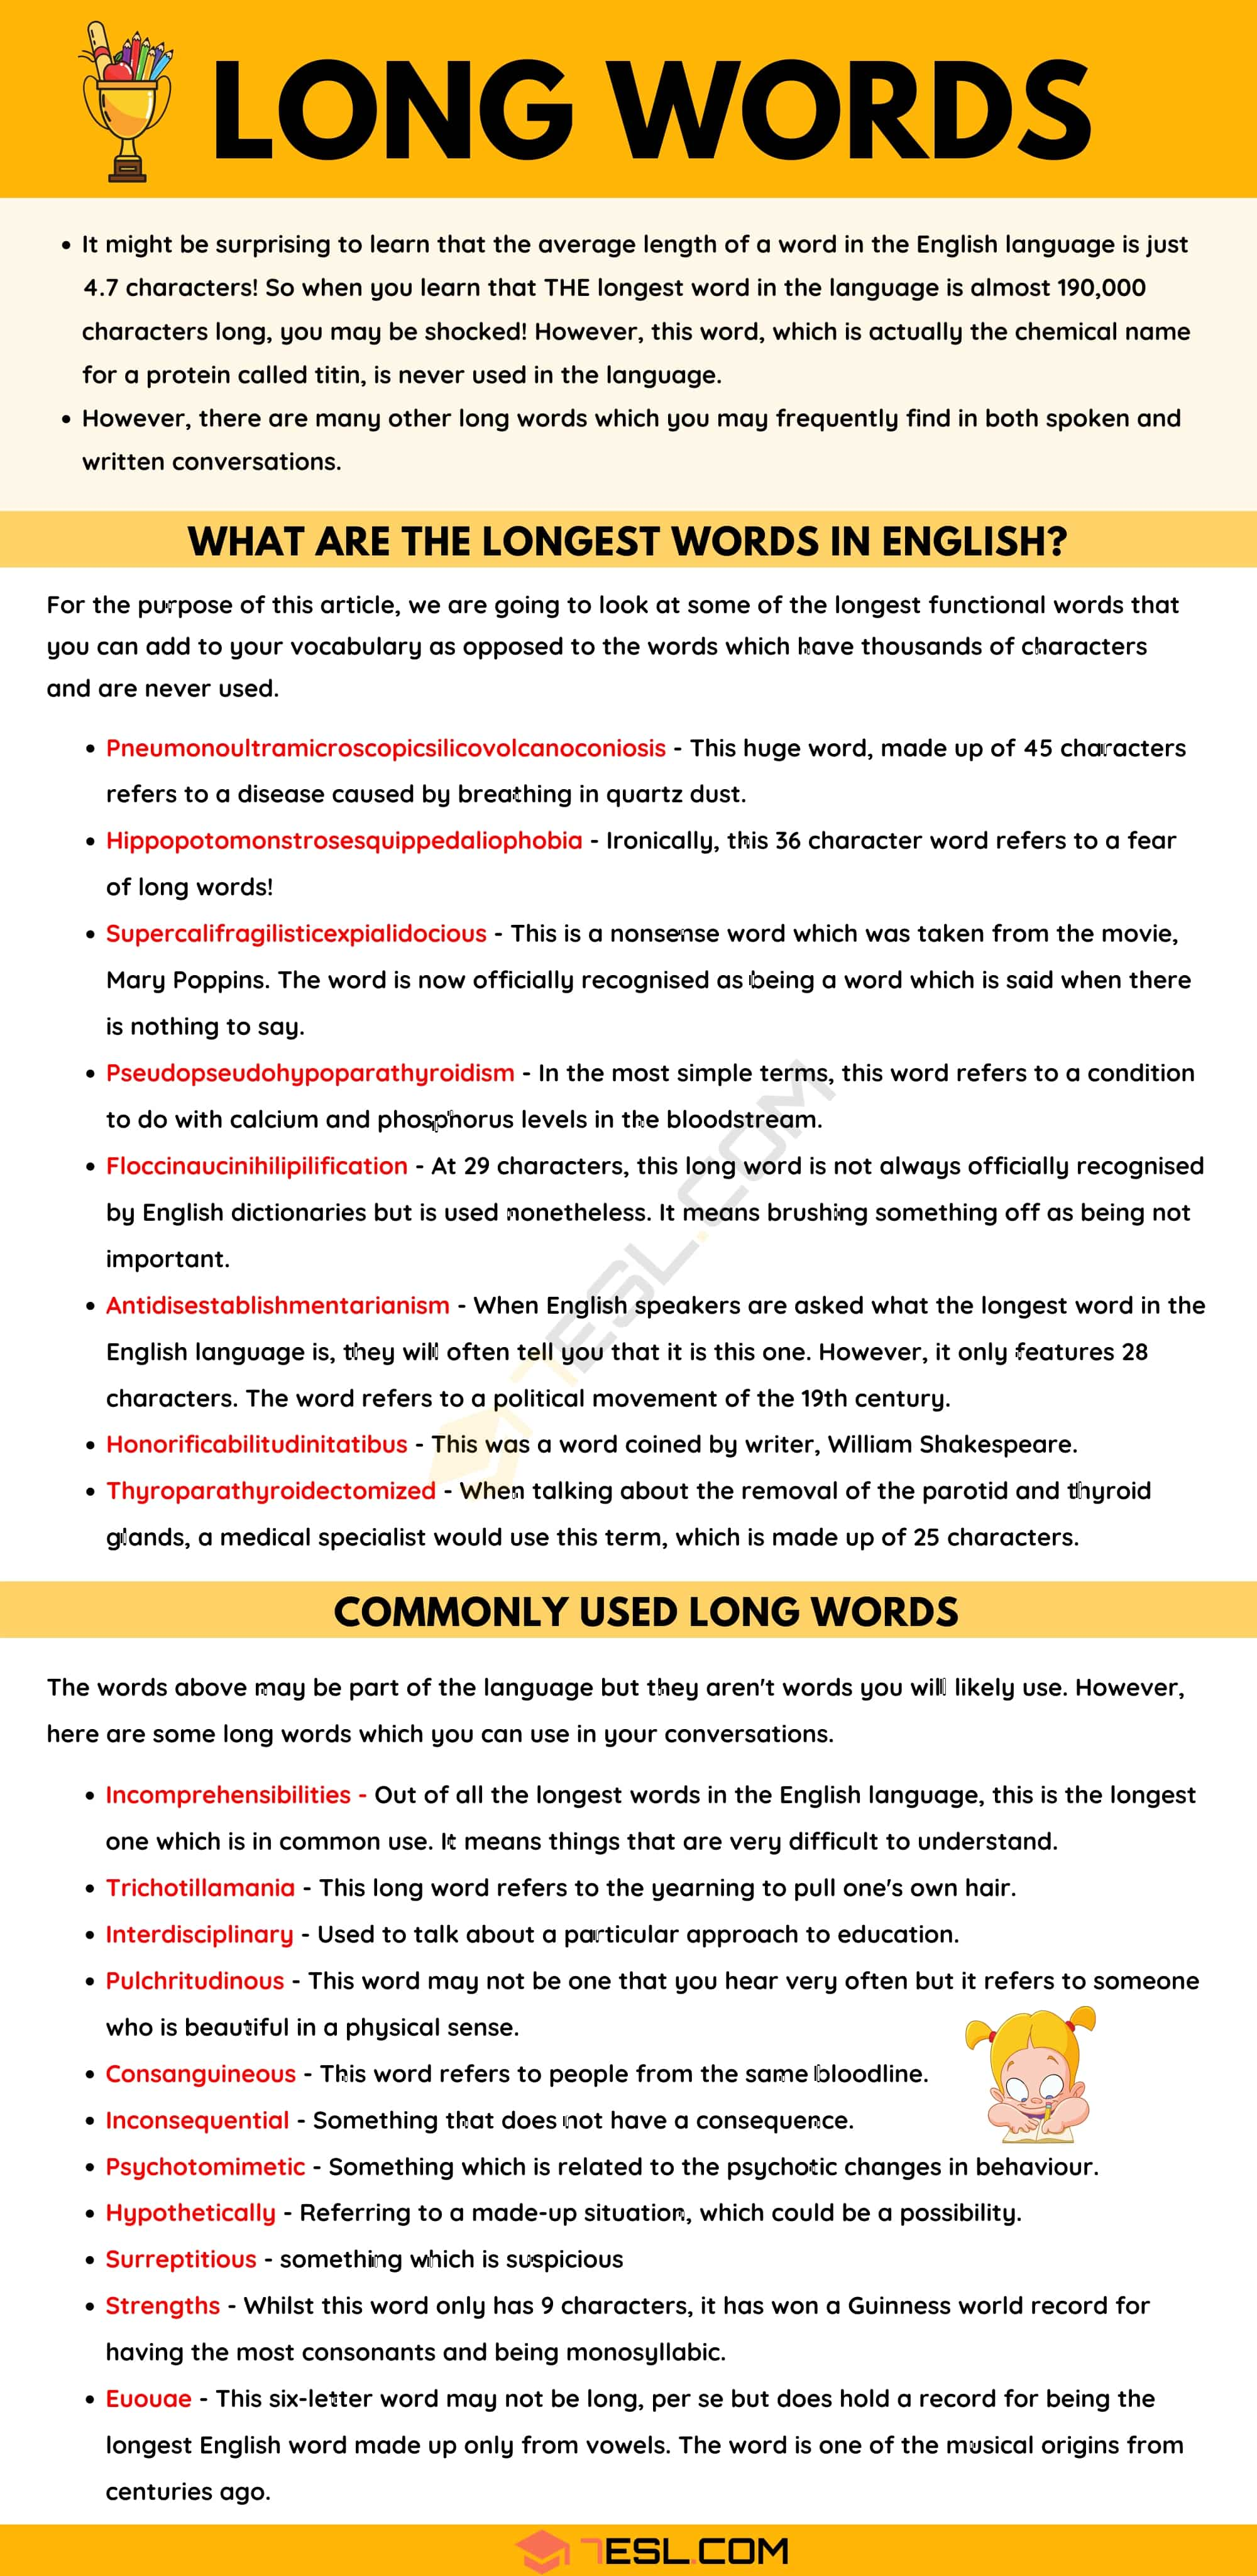 Long Words: What are Longest Words? Commonly Used Long Words in English